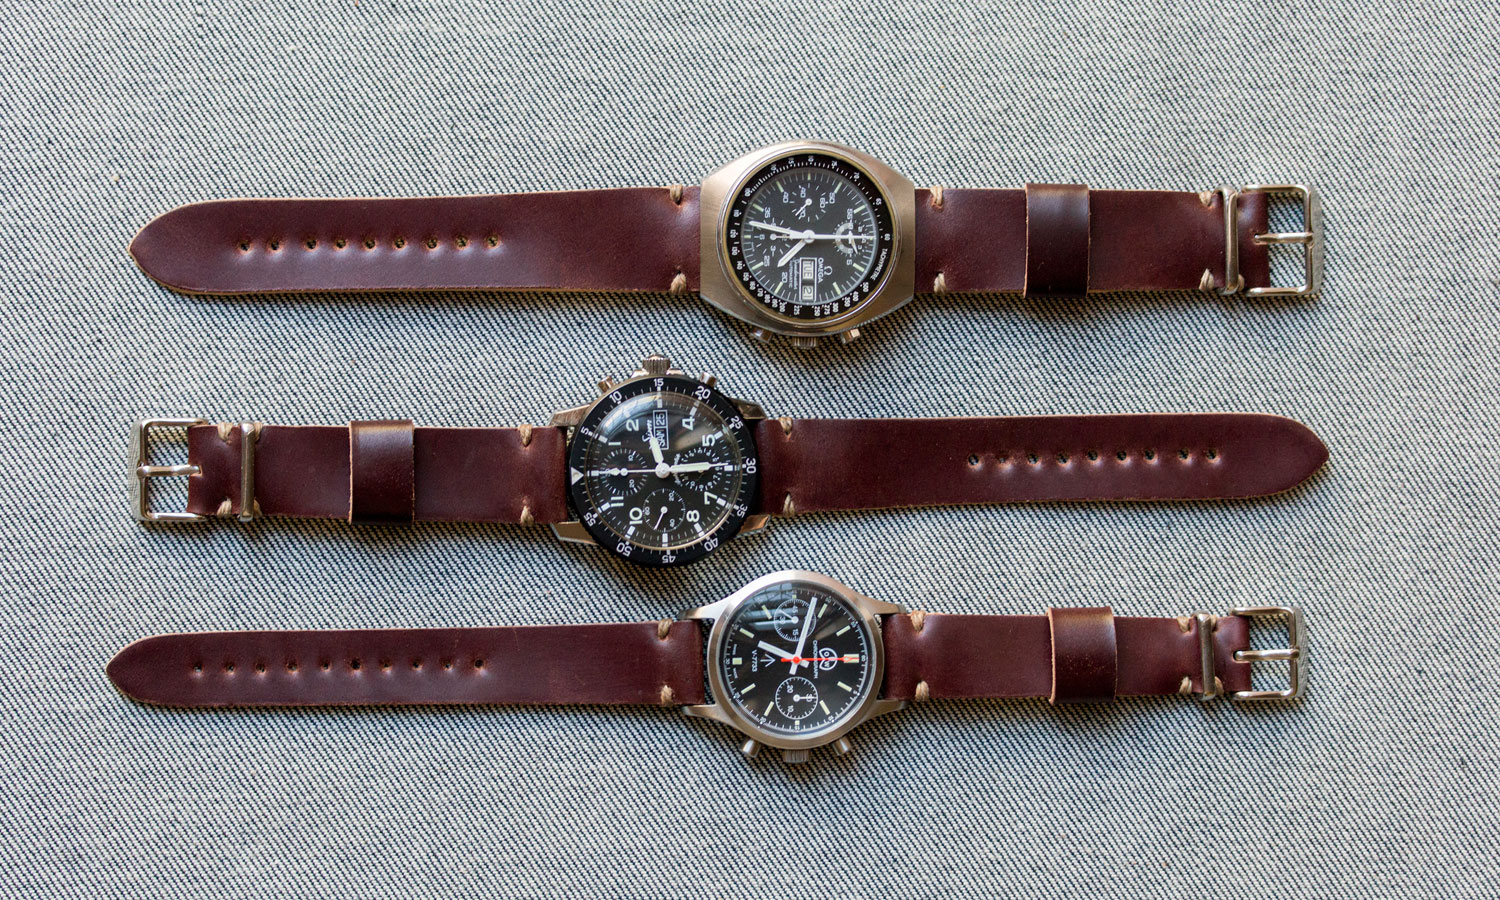 Worn Amp Wound Model 2 Cordovan Watch Straps 2015 Selectism